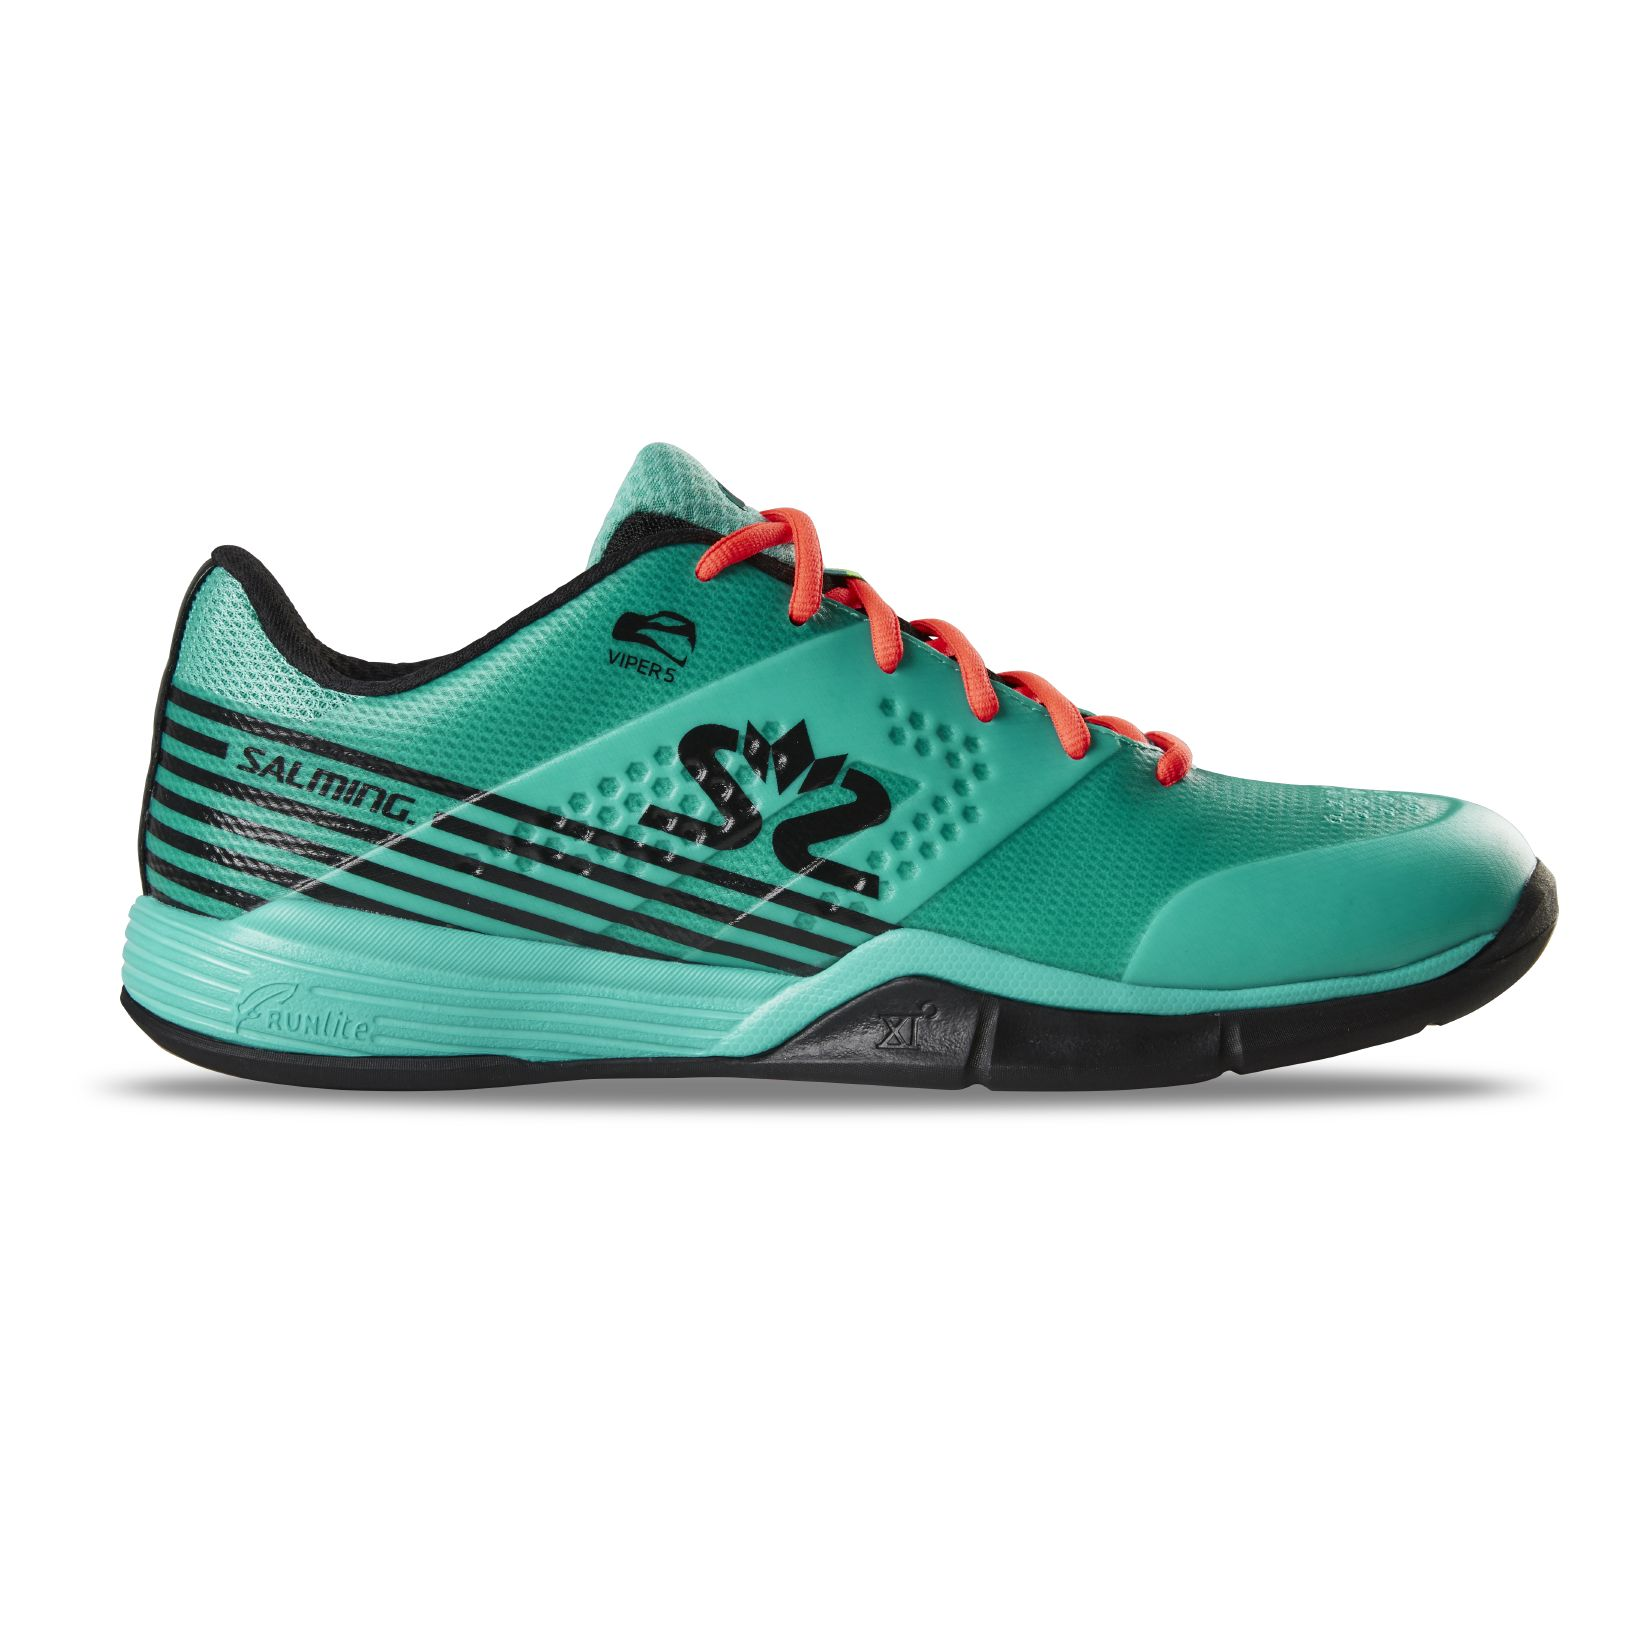 Salming Viper 5 Shoe Men Turquoise/Black 7,5 UK - 42 EUR - 26,5 cm